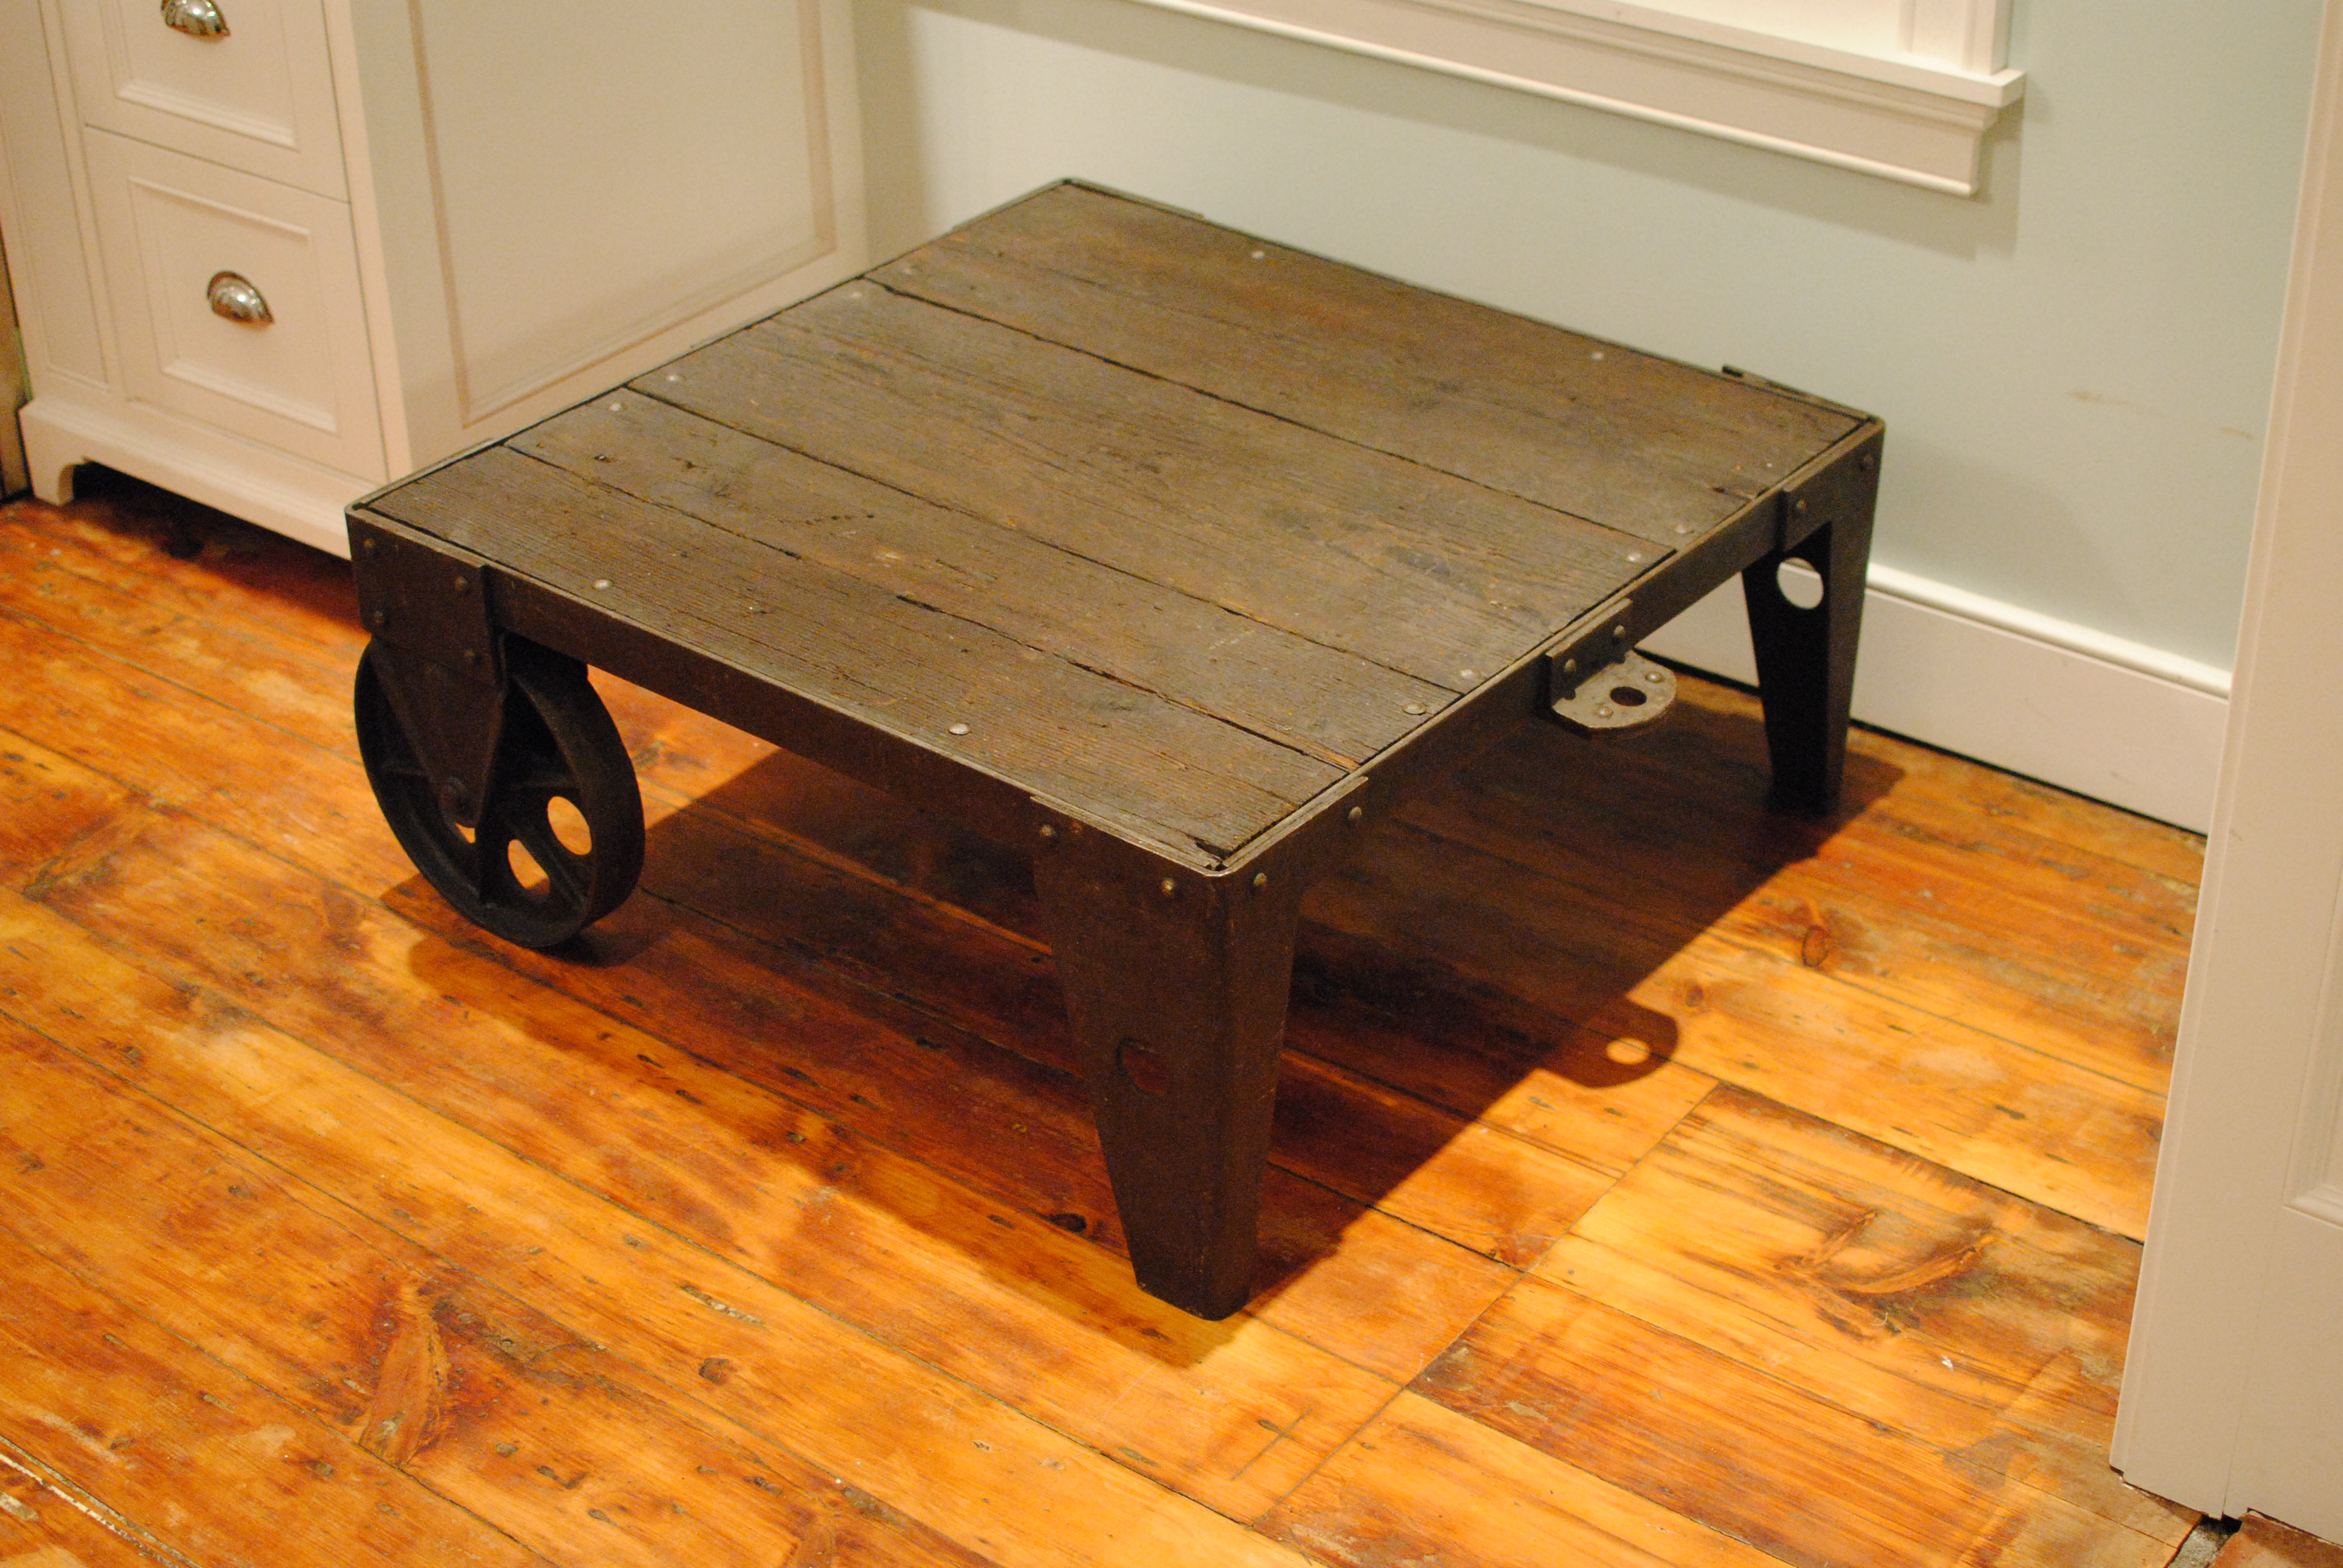 3 Repurposed Coffee Tables